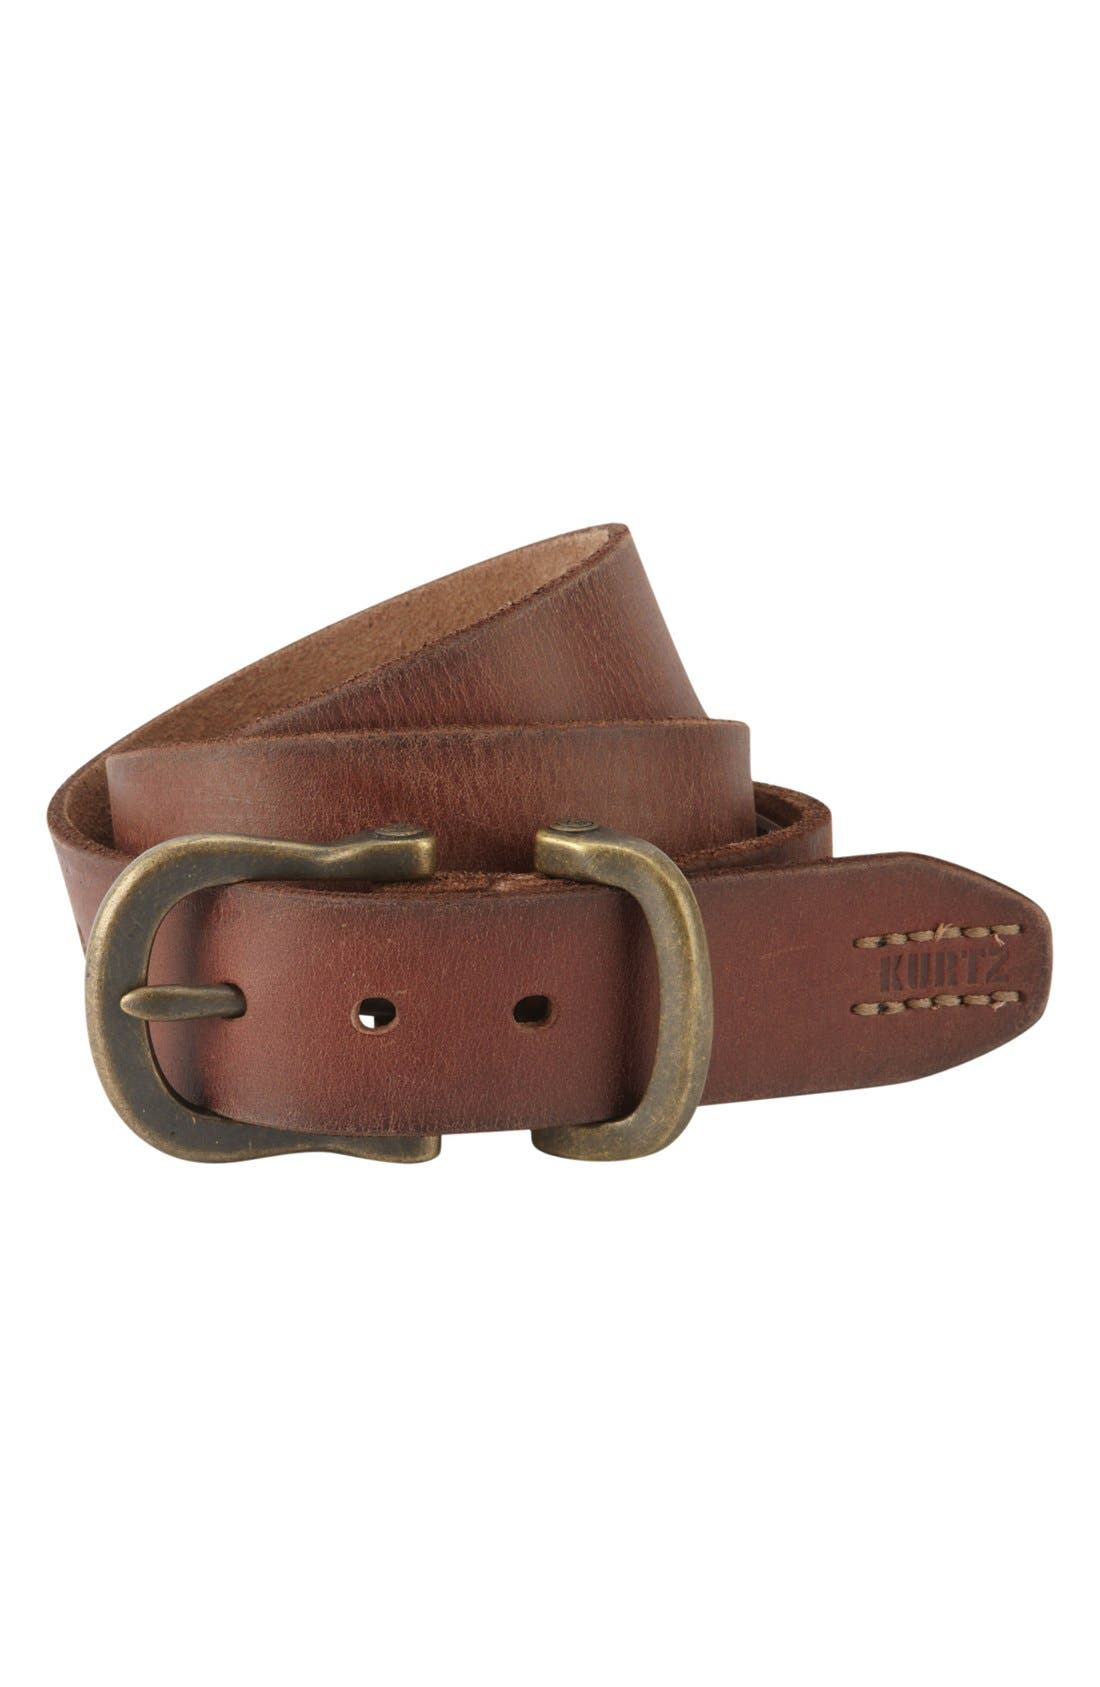 Main Image - A. Kurtz 'Dexter' Leather Belt